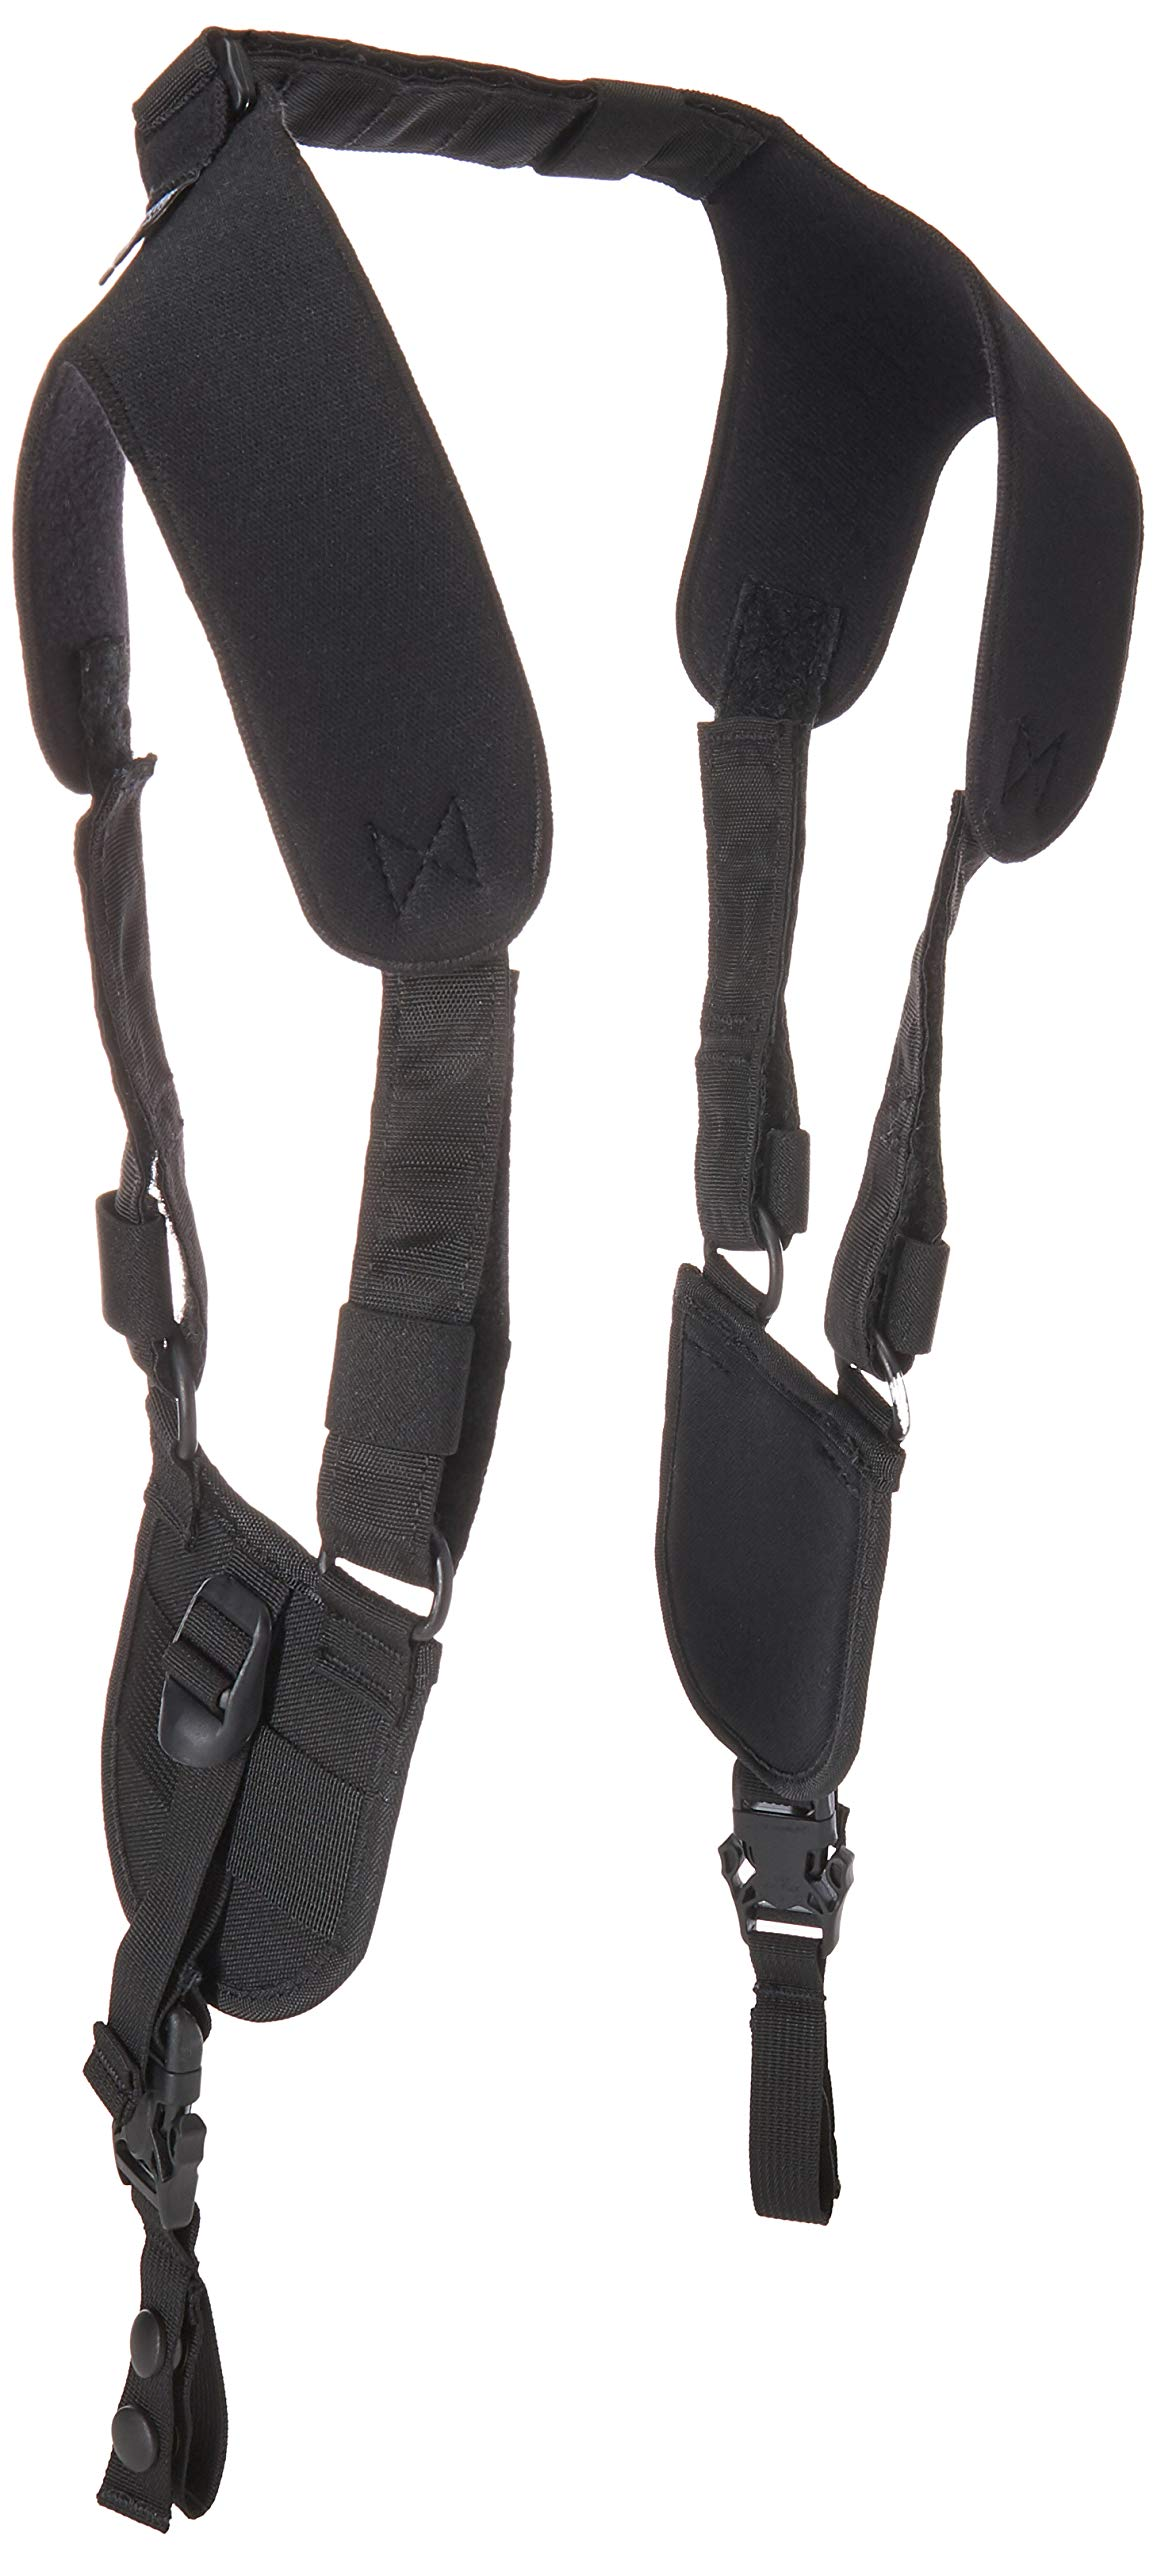 BLACKHAWK! Ergonomic Black Duty Belt Harness - Large/XLarge by BLACKHAWK!